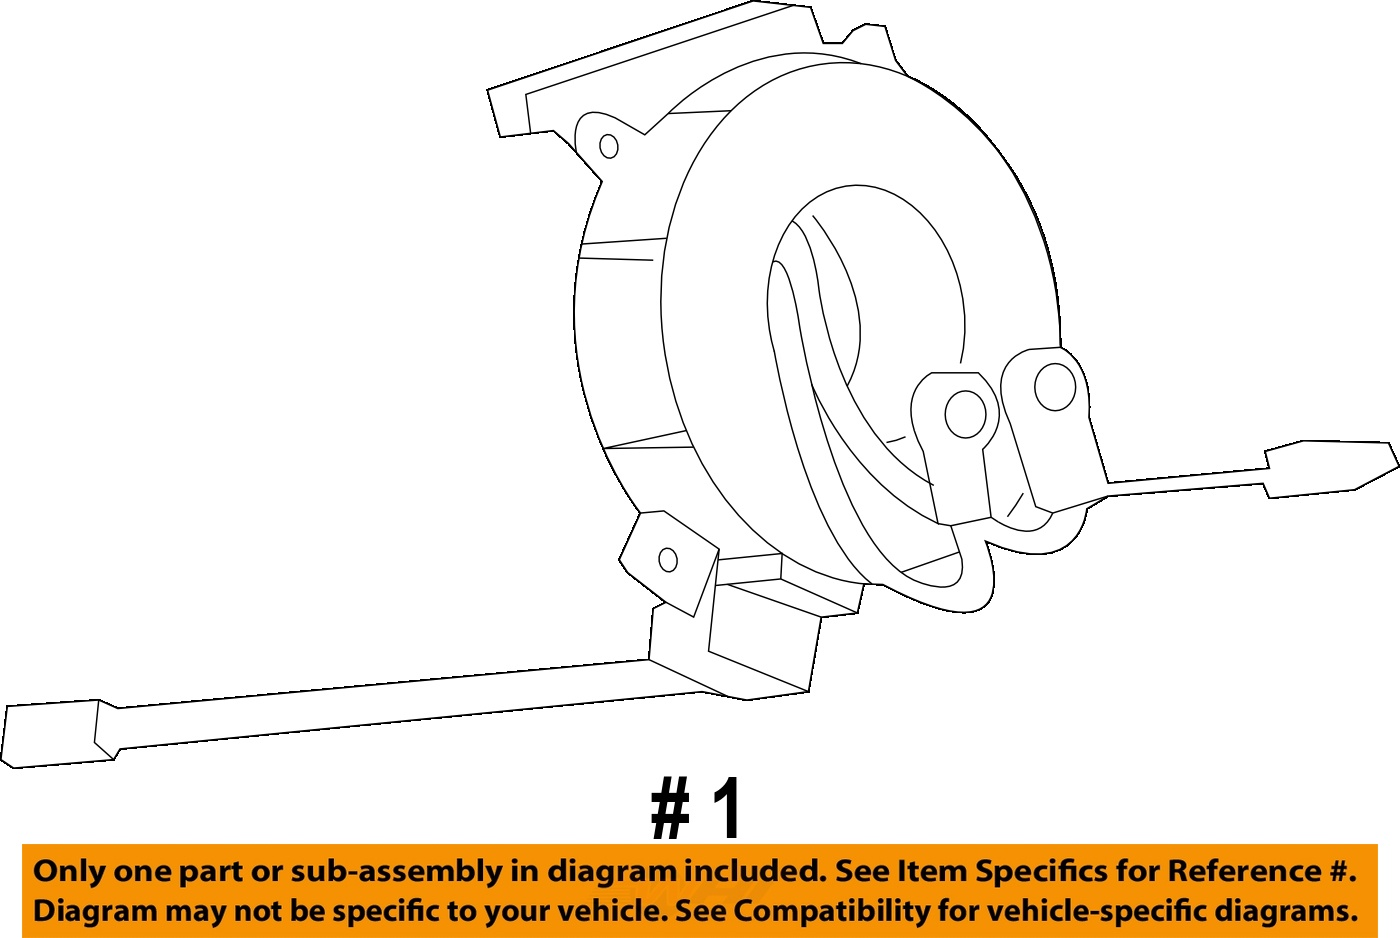 1997 Oldsmobile 88 Fuse Box Diagram On Ac Fan Motor Replacement For